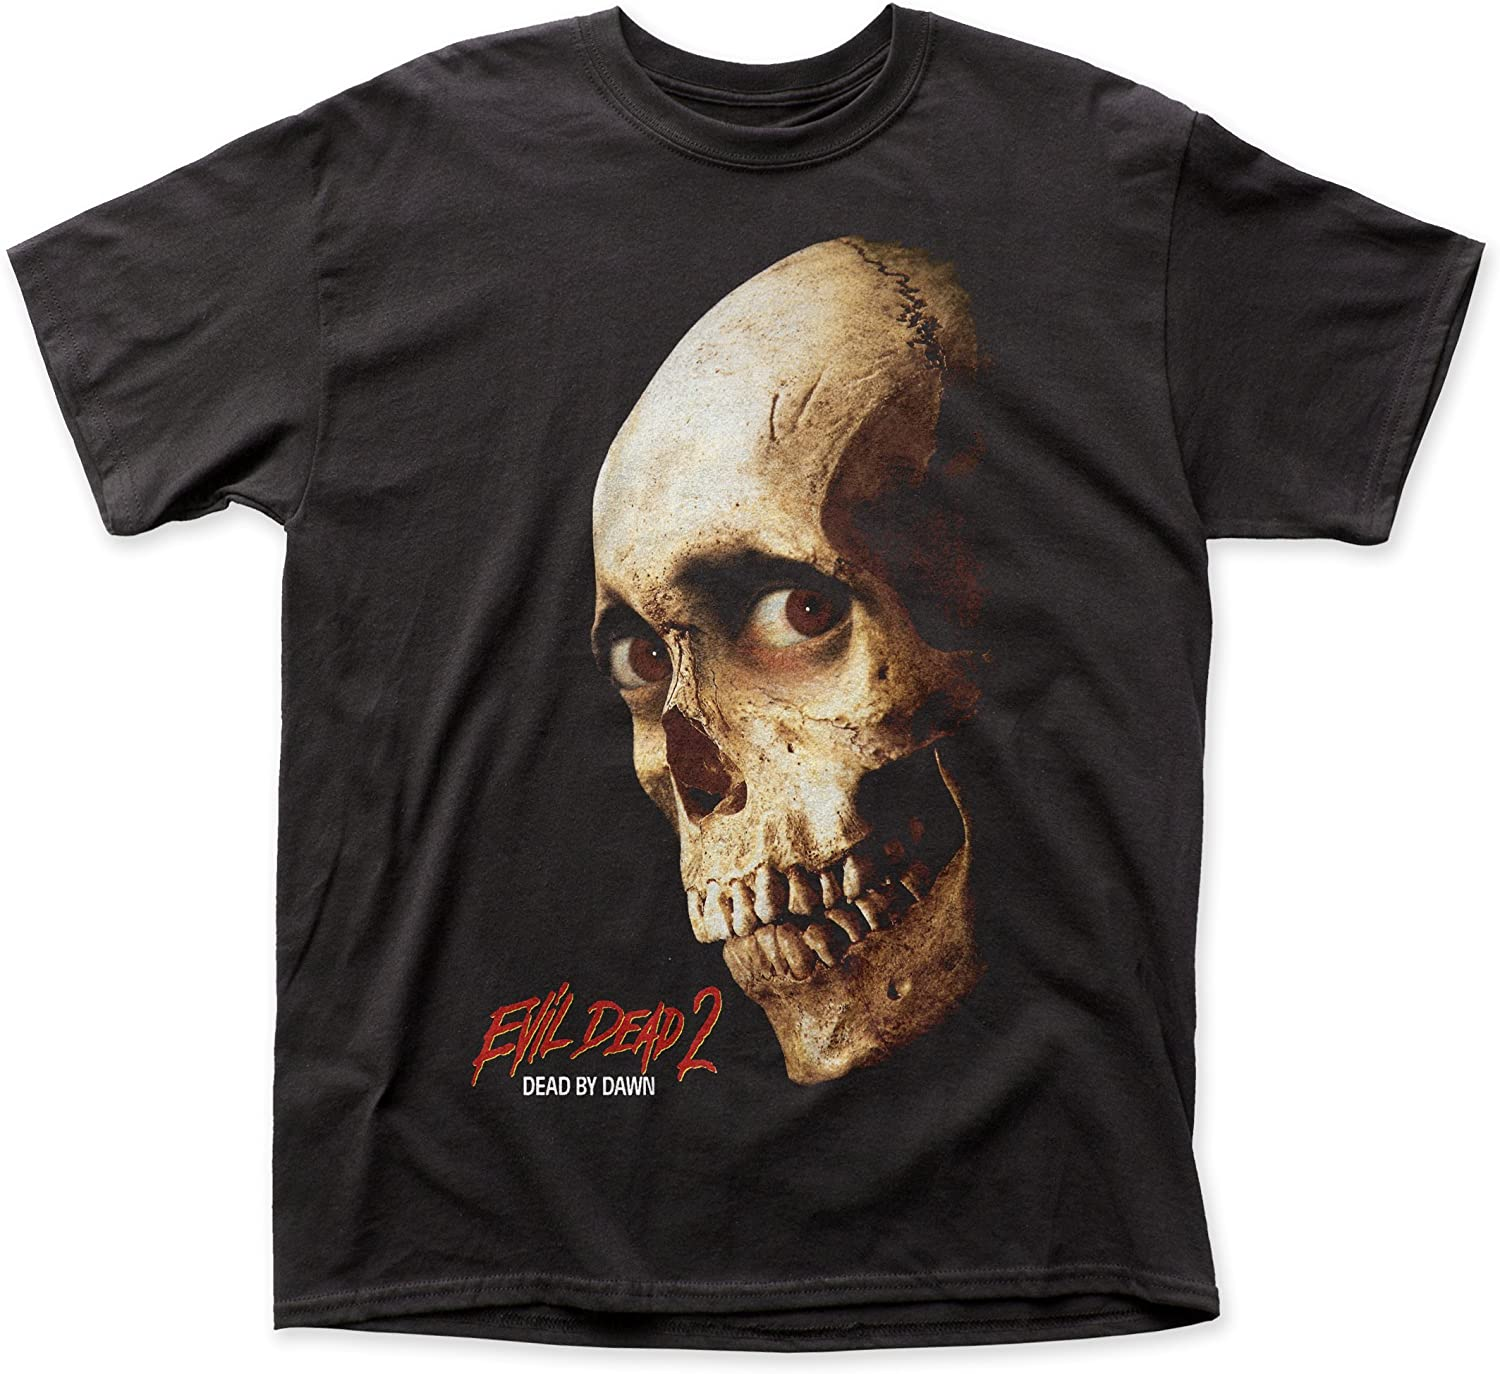 Evil Dead II Dead by Dawn Color Poster Adult tee